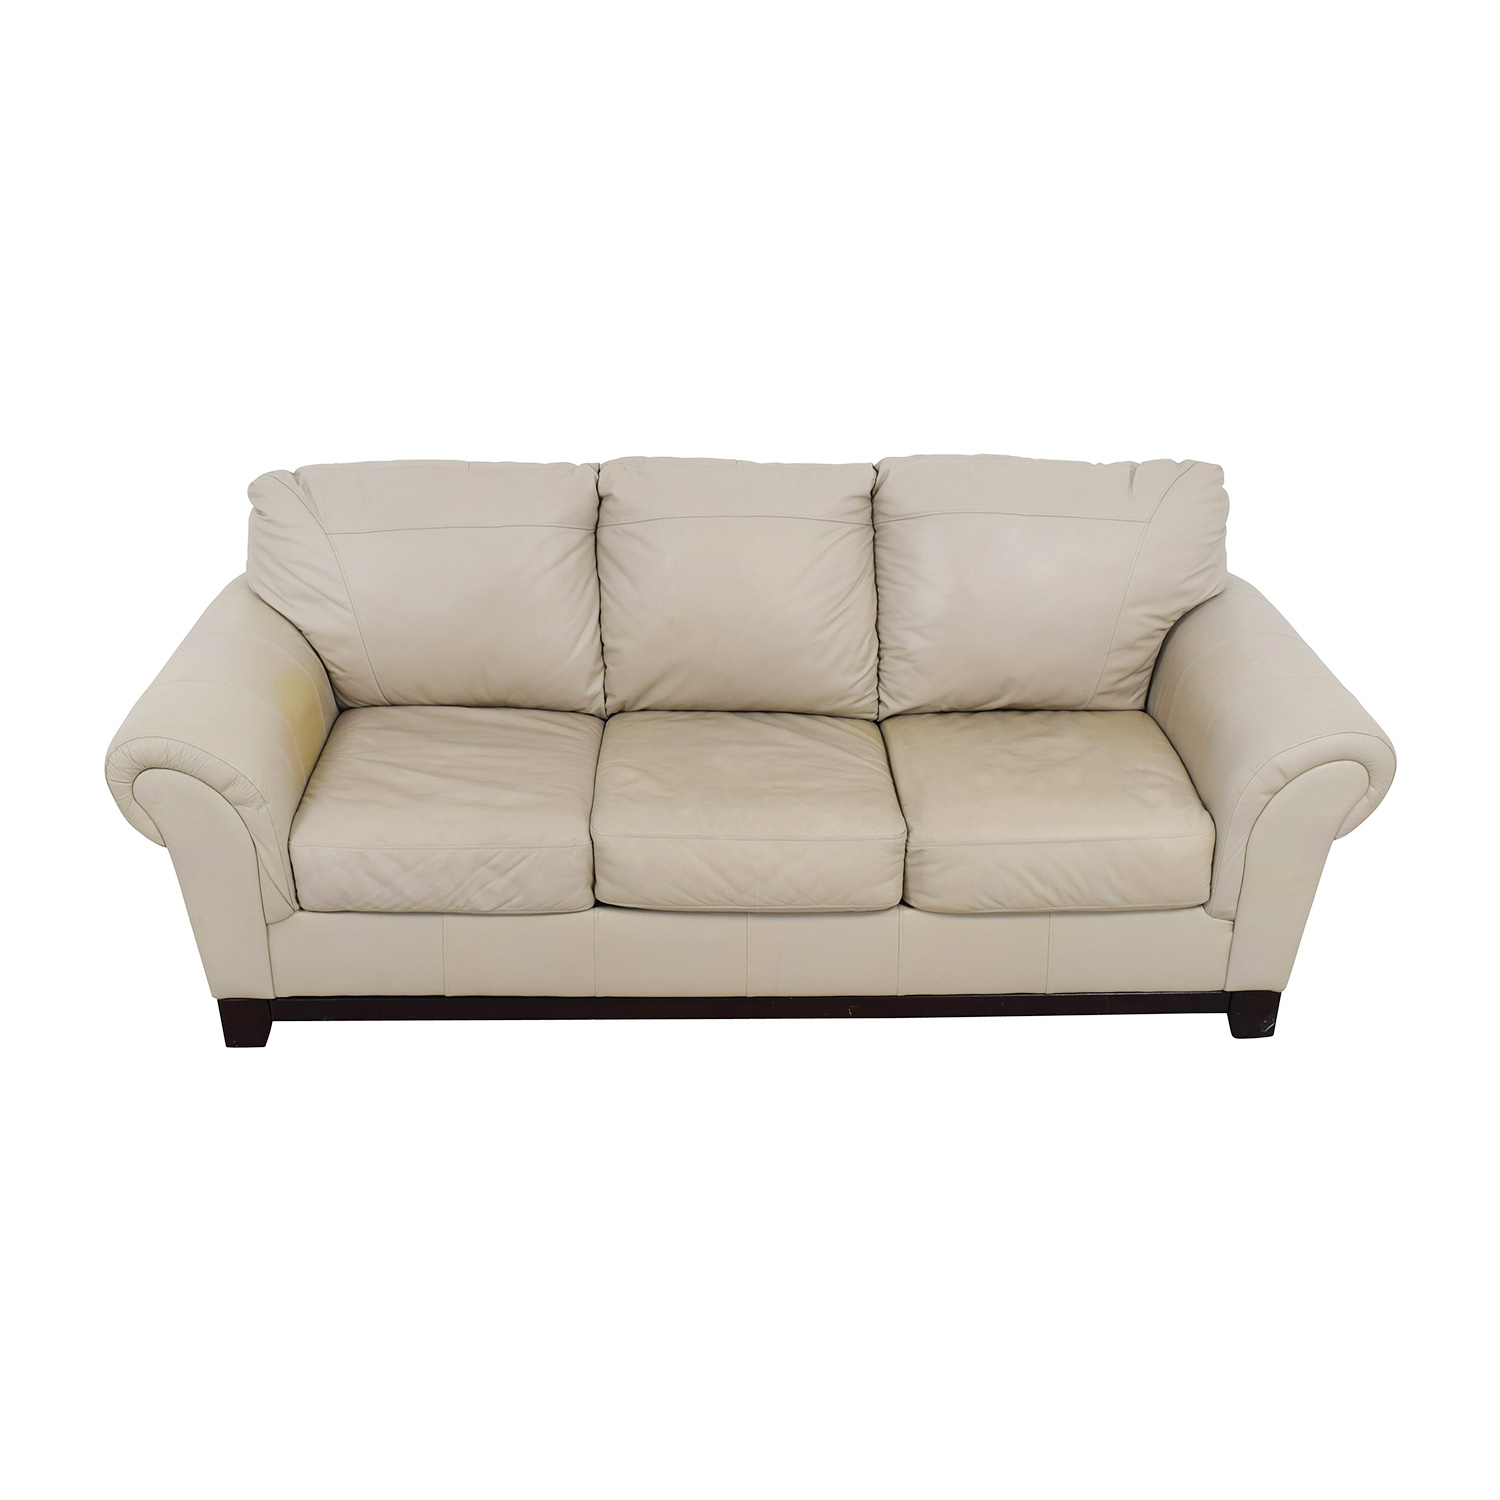 buy Taupe Leather Couch online